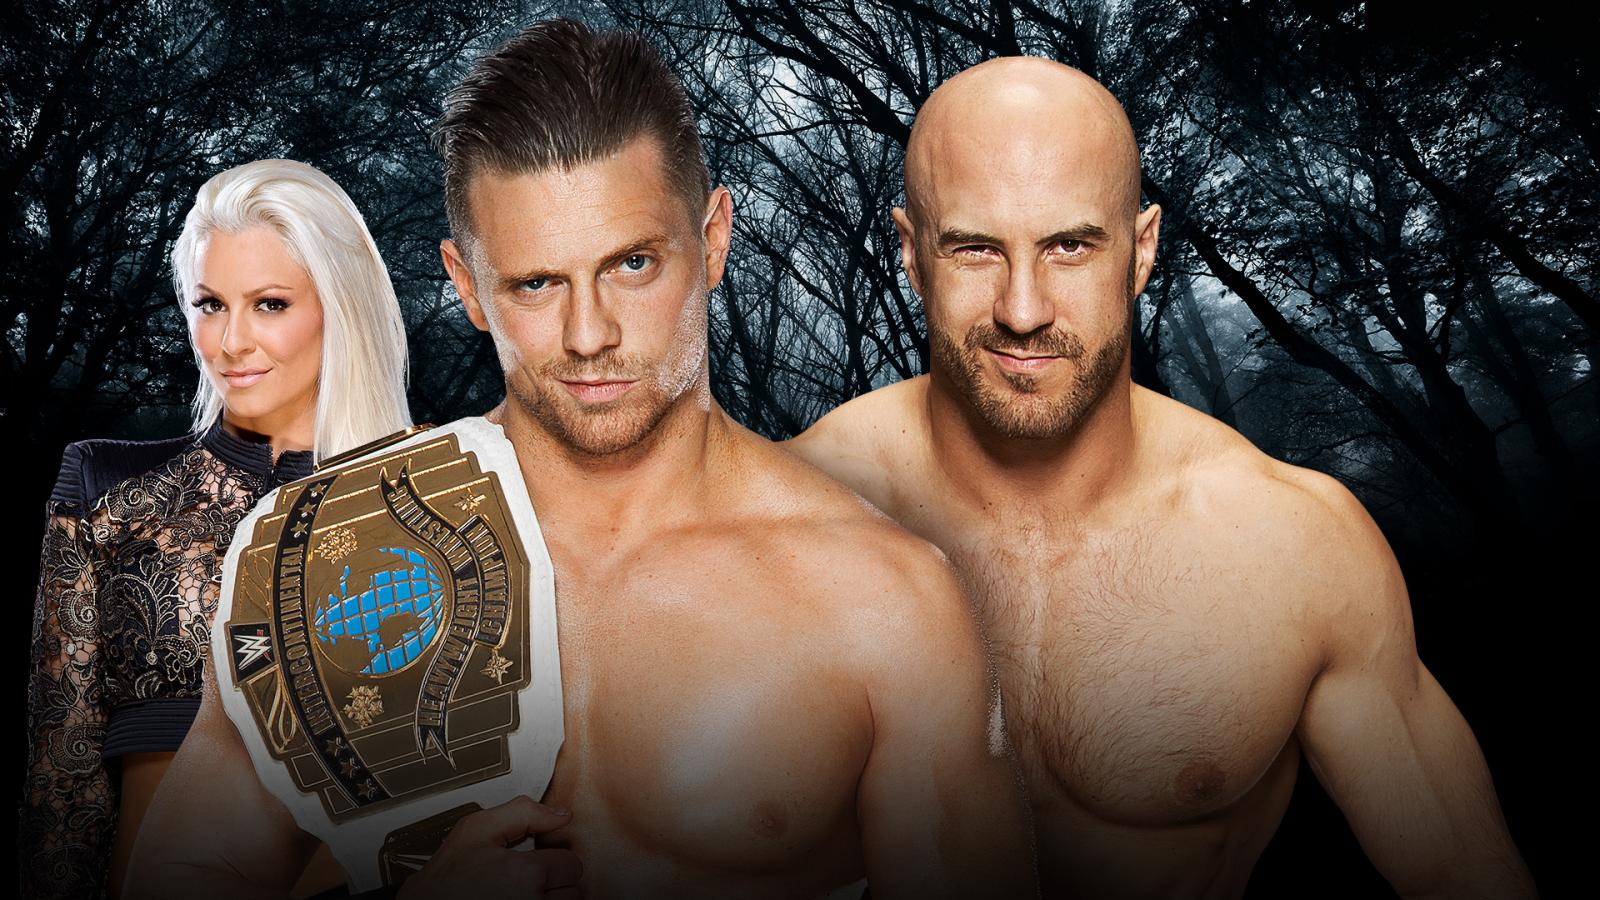 WWE Payback - The Miz Vs. Cesaro